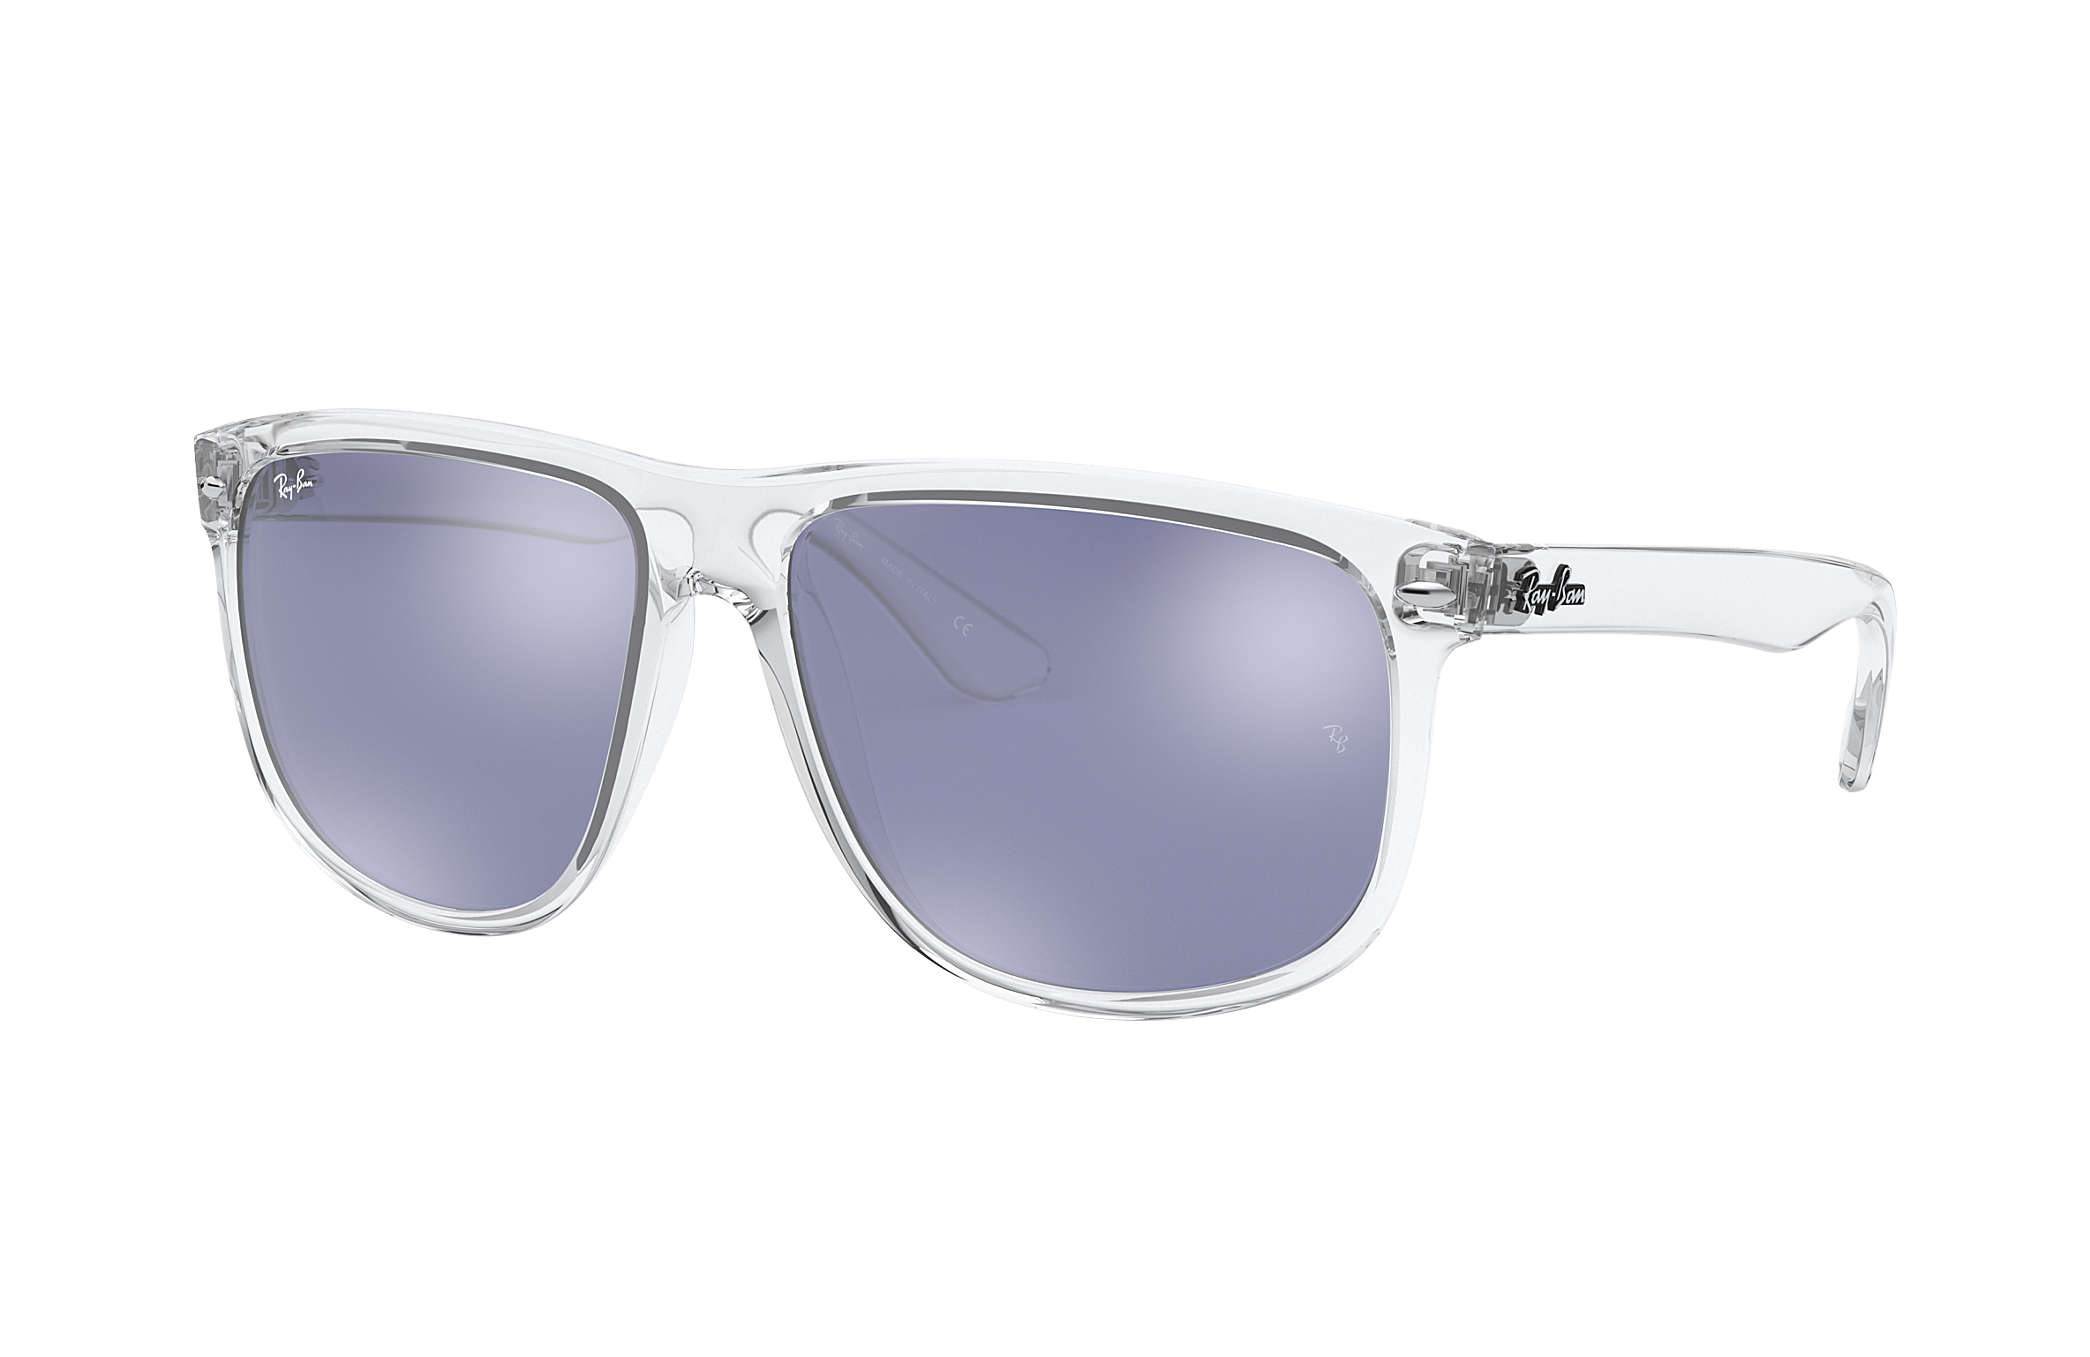 Ray-Ban RB4147 Transparent - Injected - Verres Violet ... 24b58b7eb086